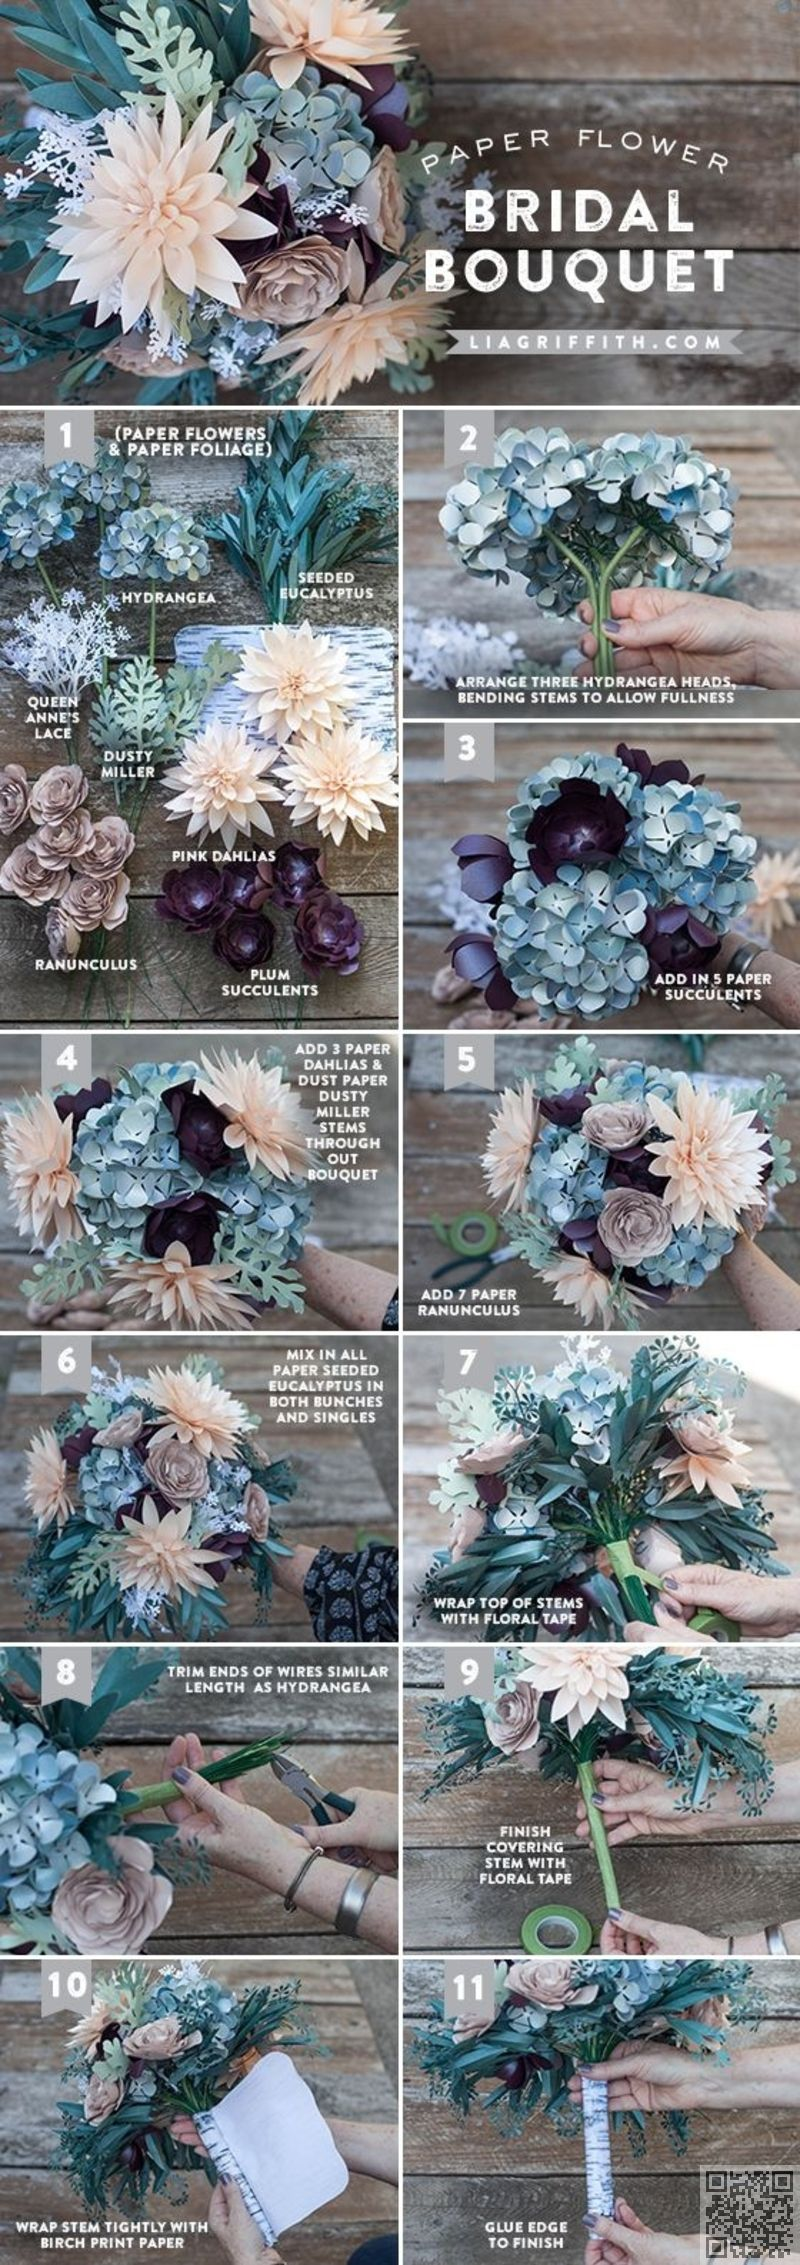 3. #Rustic Paper #Flower Bridal Bouquet - So Many #Pretties! Let\'s ...